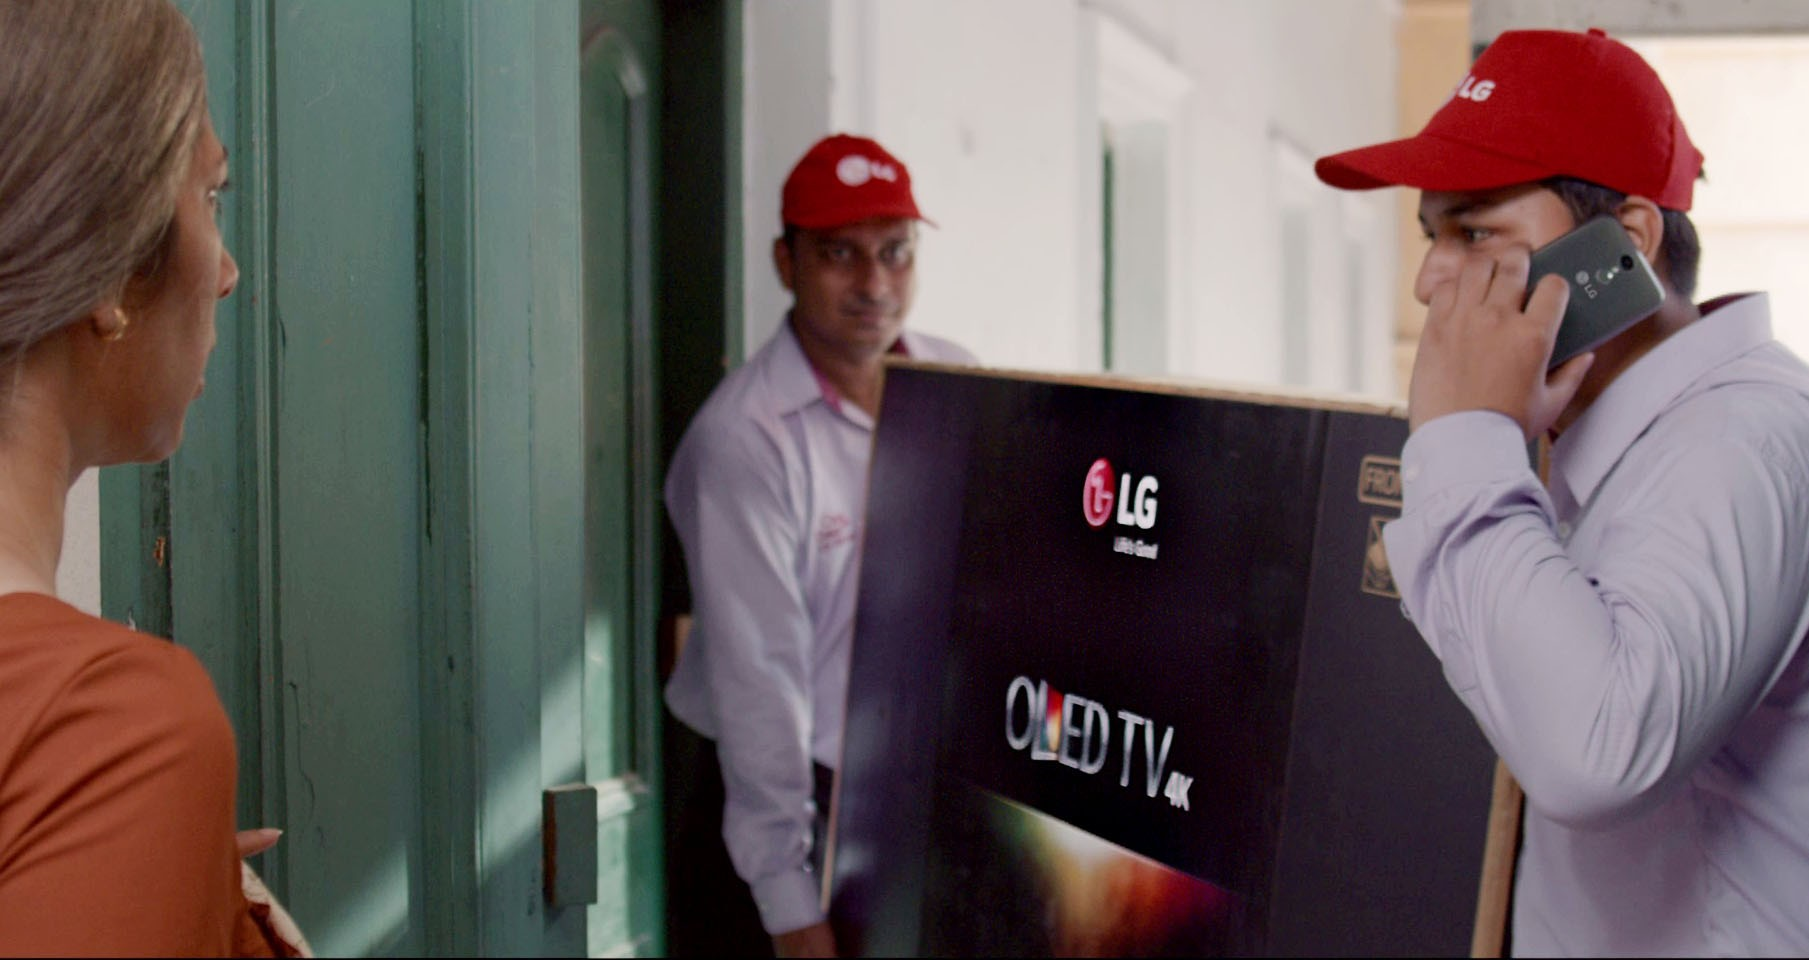 """A screenshot of LG India's """"Astronaut"""" video, two men are delivering LG OLED TV to a woman's house."""